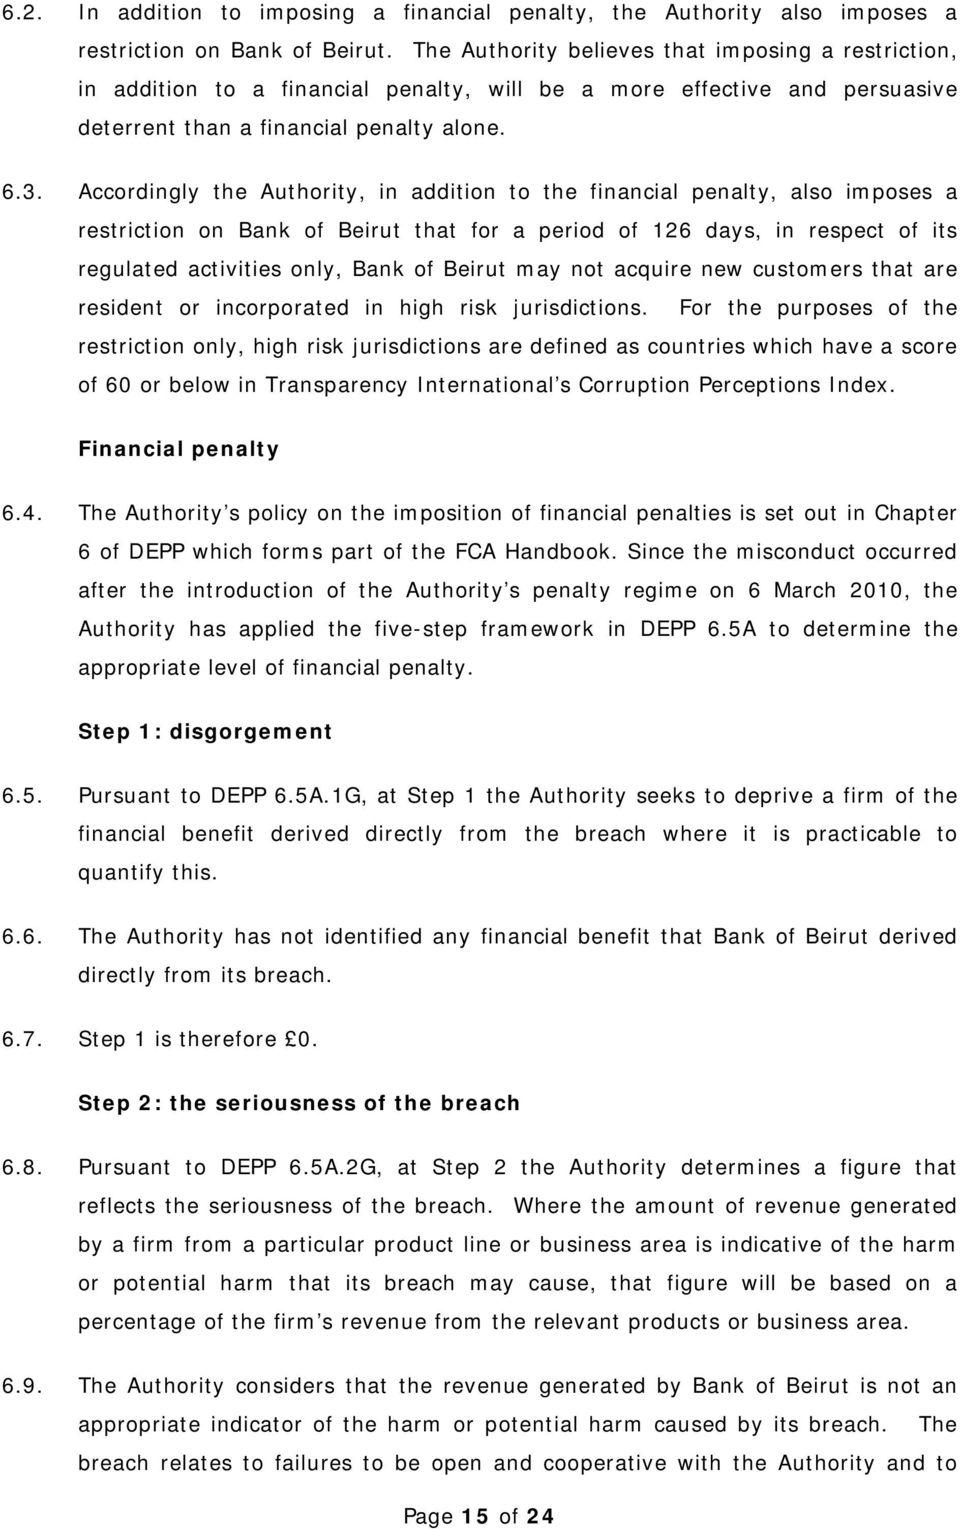 Accordingly the Authority, in addition to the financial penalty, also imposes a restriction on Bank of Beirut that for a period of 126 days, in respect of its regulated activities only, Bank of